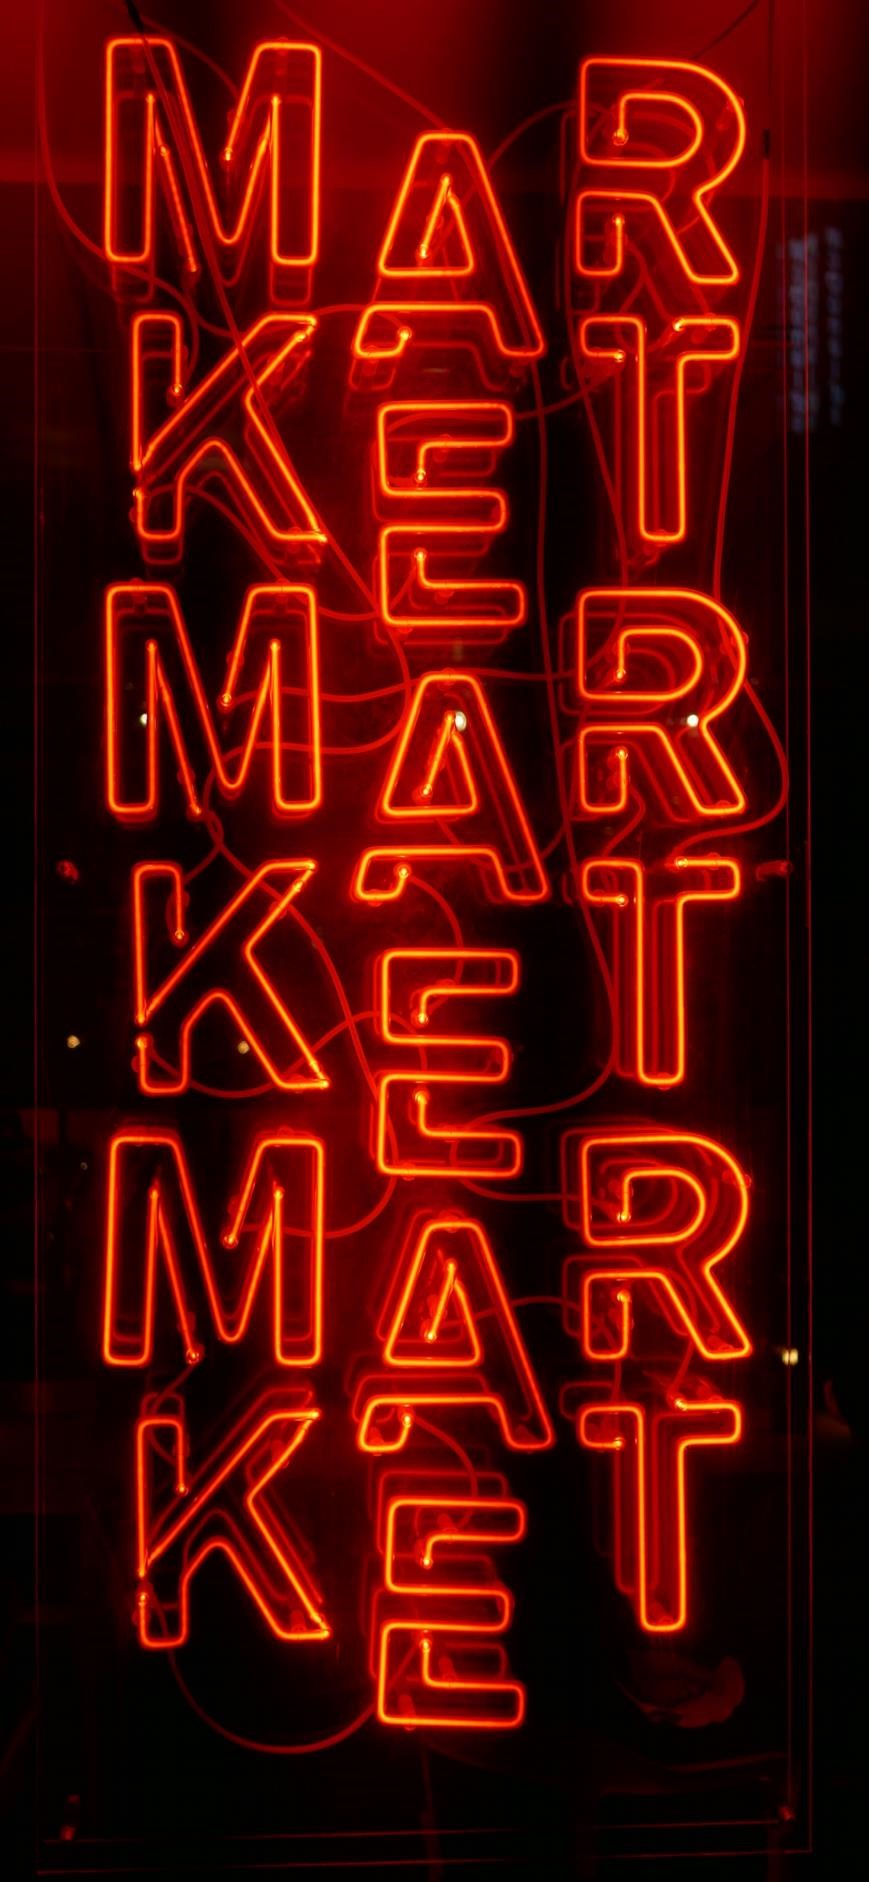 Neon Sign Iphone Wallpapers Art Free Hd Download